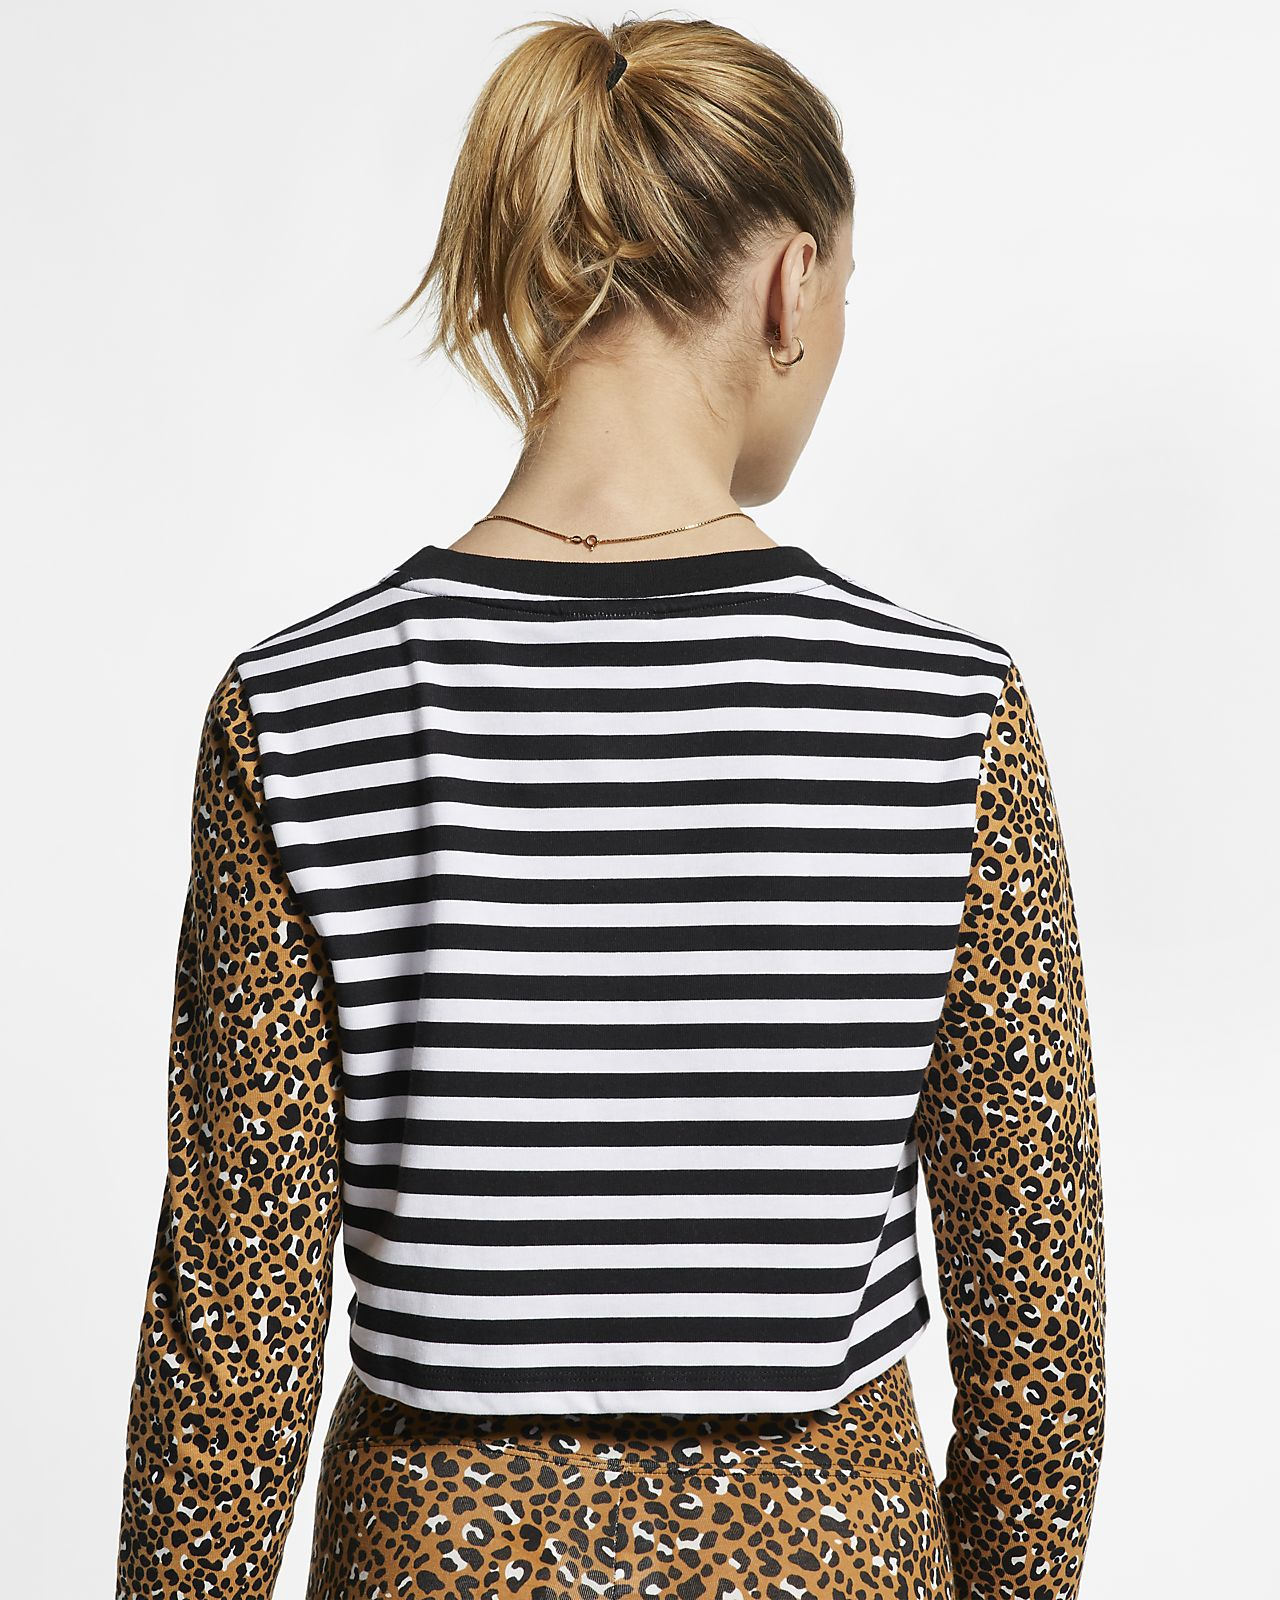 75df0df5 Nike Sportswear Animal Print Women's Long-Sleeve Top. Nike.com GB